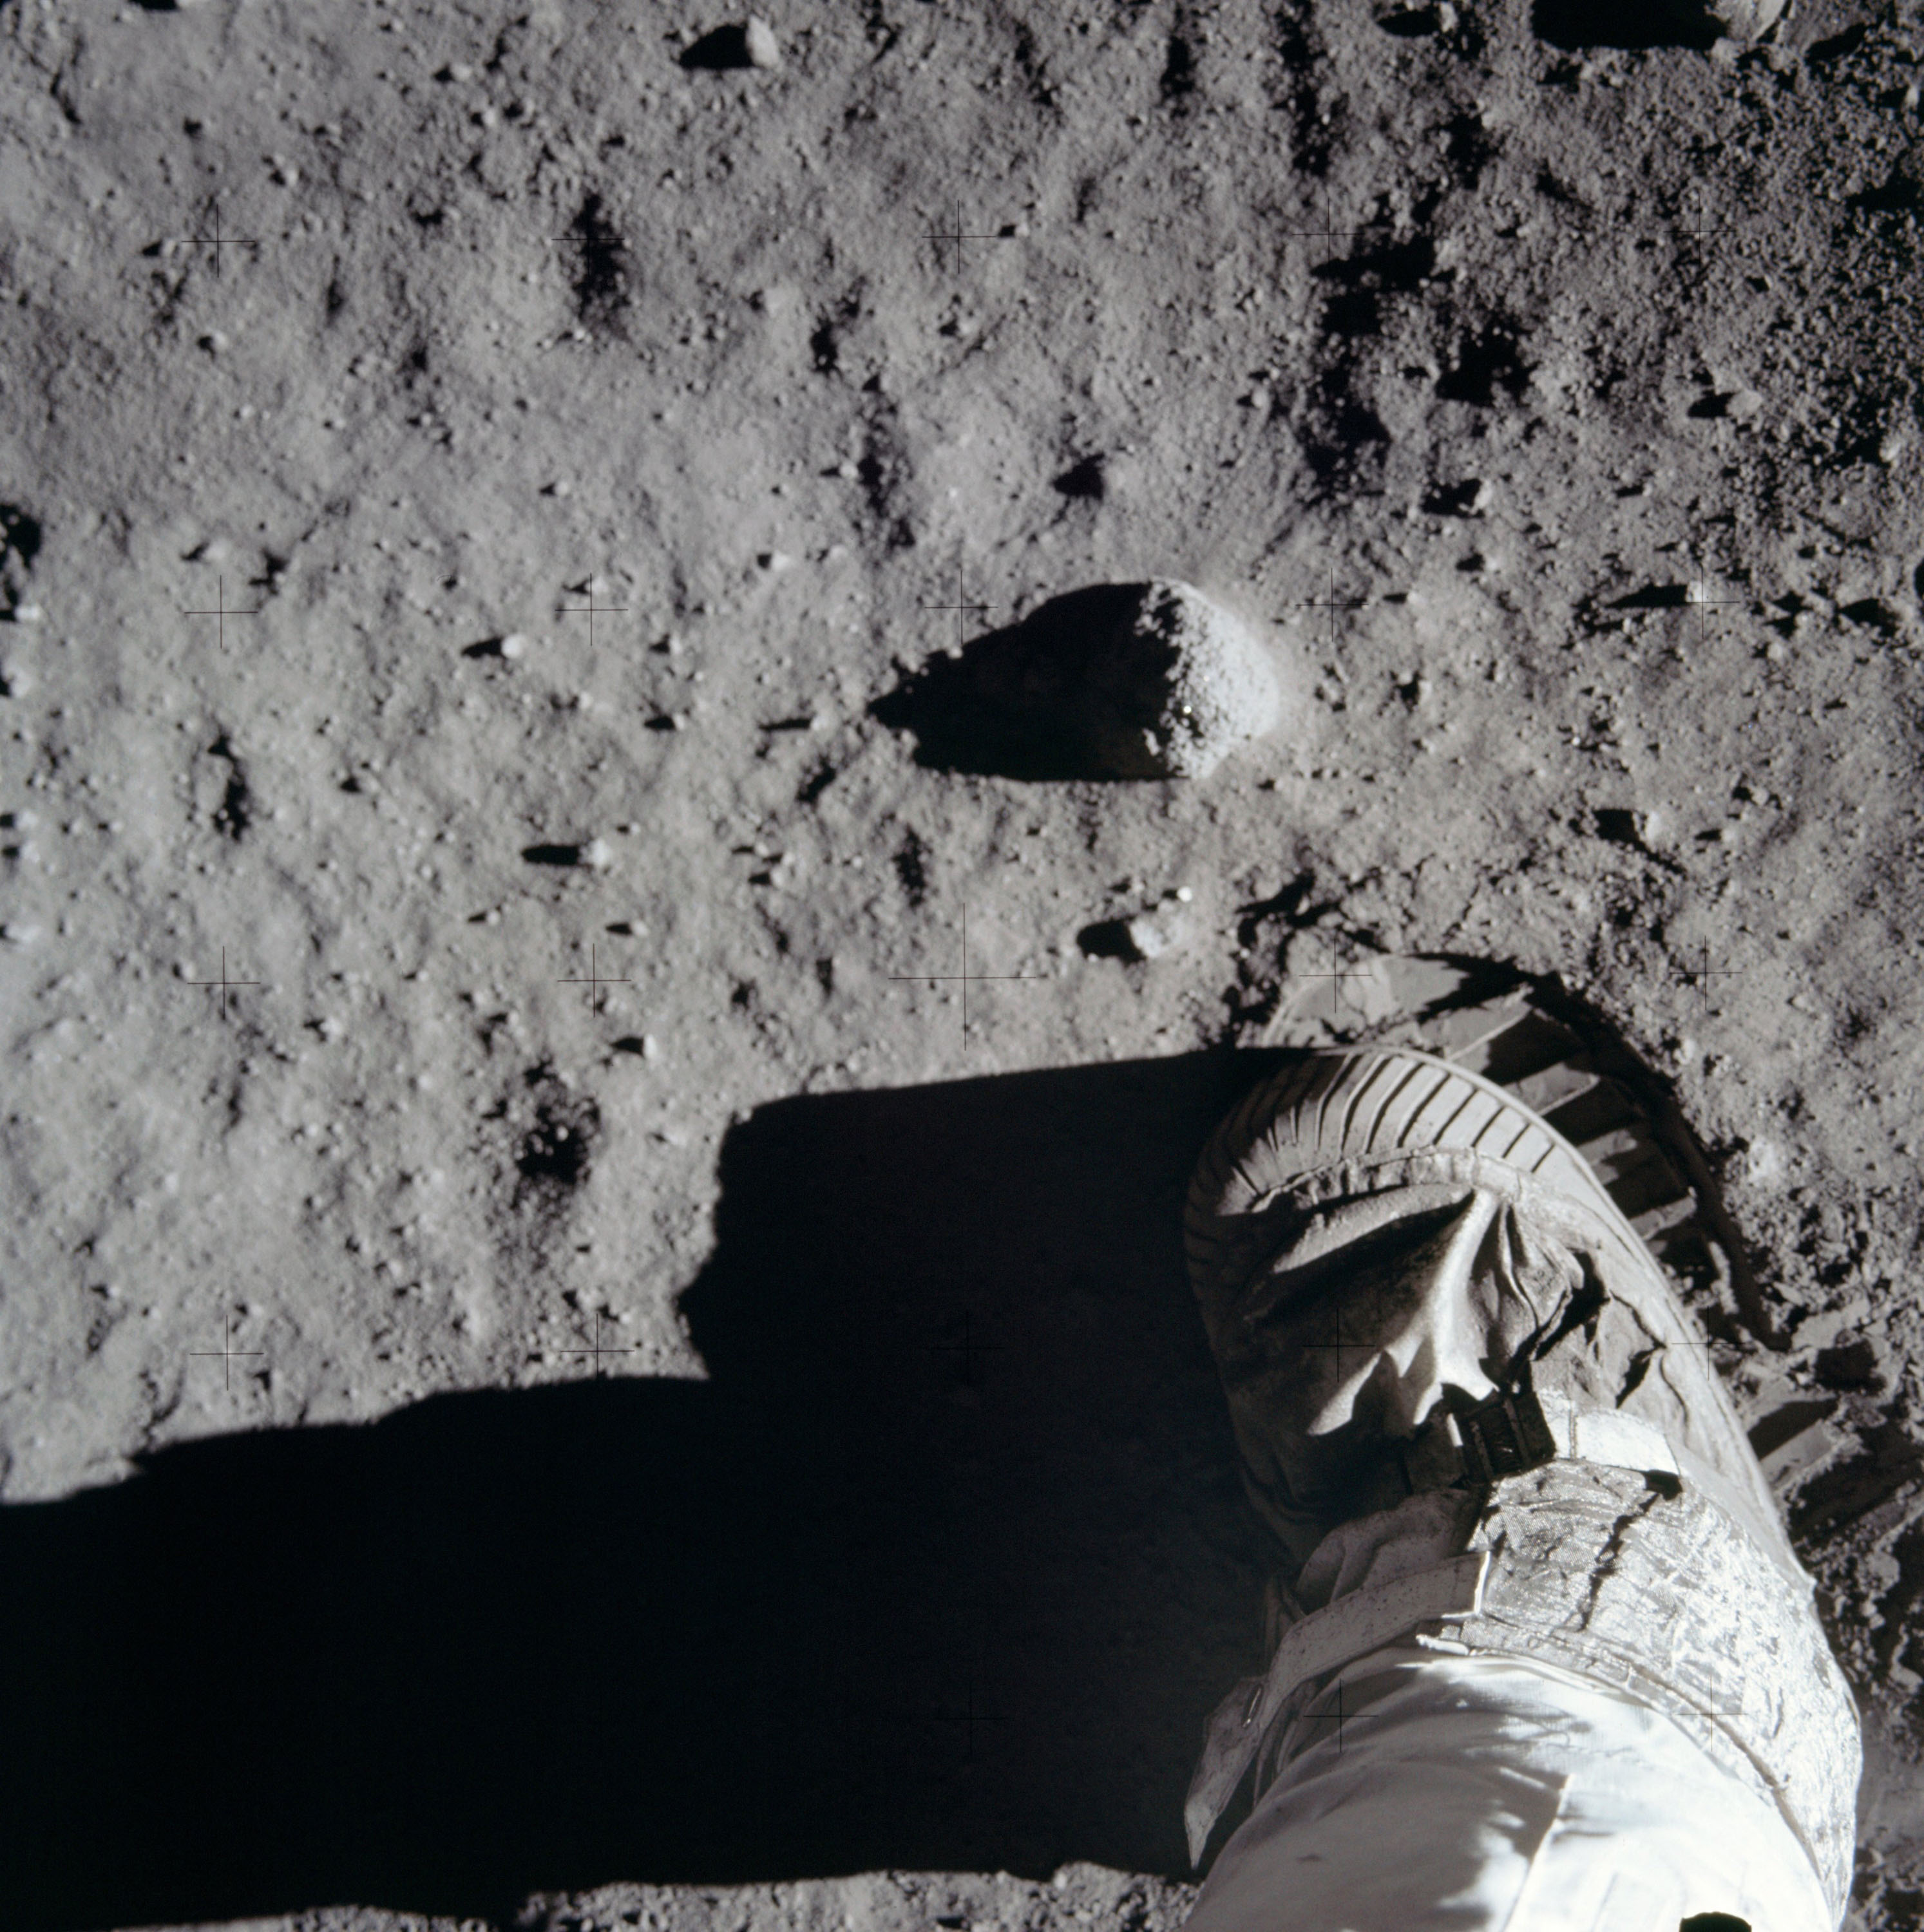 The boot of an Apollo 11 astronaut on the surface of the Moon in 1969